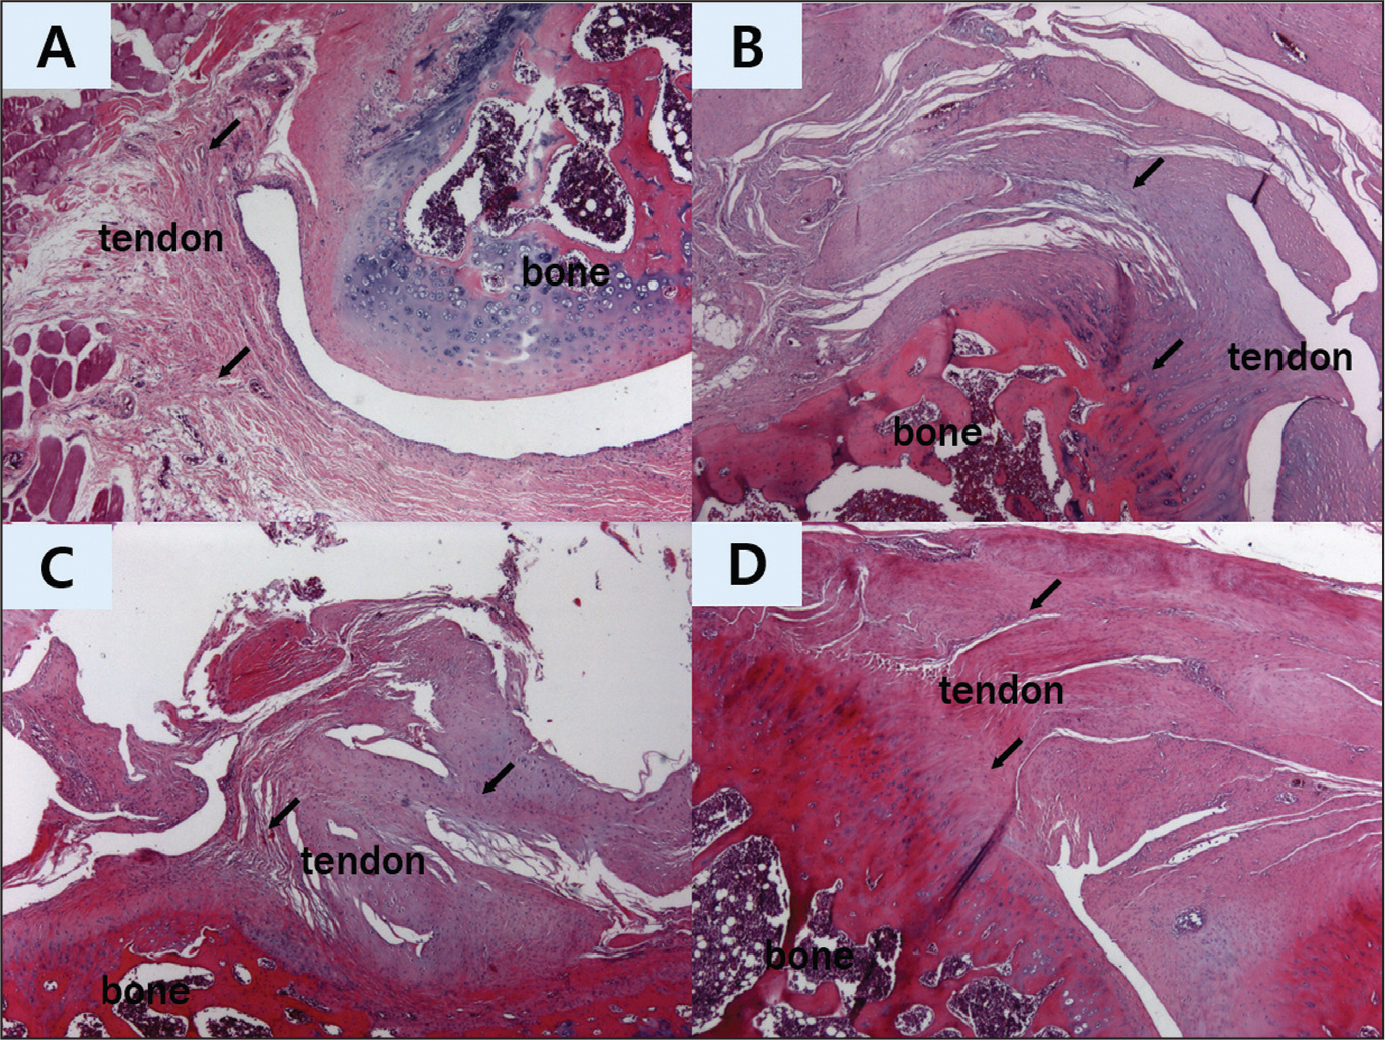 Results of hematoxylin-eosin staining (original magnification ×50) of the supraspinatus tendon repair site at 6 and 12 weeks after repair. Supraspinatus repair only at 6 weeks (group 1—control) (A). Supraspinatus repair only at 12 weeks (group 1) (B). Supraspinatus repair with alginate sheet at 6 weeks (group 2) (C). Supraspinatus repair with alginate sheet at 12 weeks (group 2) (D). In group 2, the ground substance and collagen (arrows) were increased compared with those in group 1. In group 2, tendon-to-bone density (arrows) were increased compared with that in group 1.